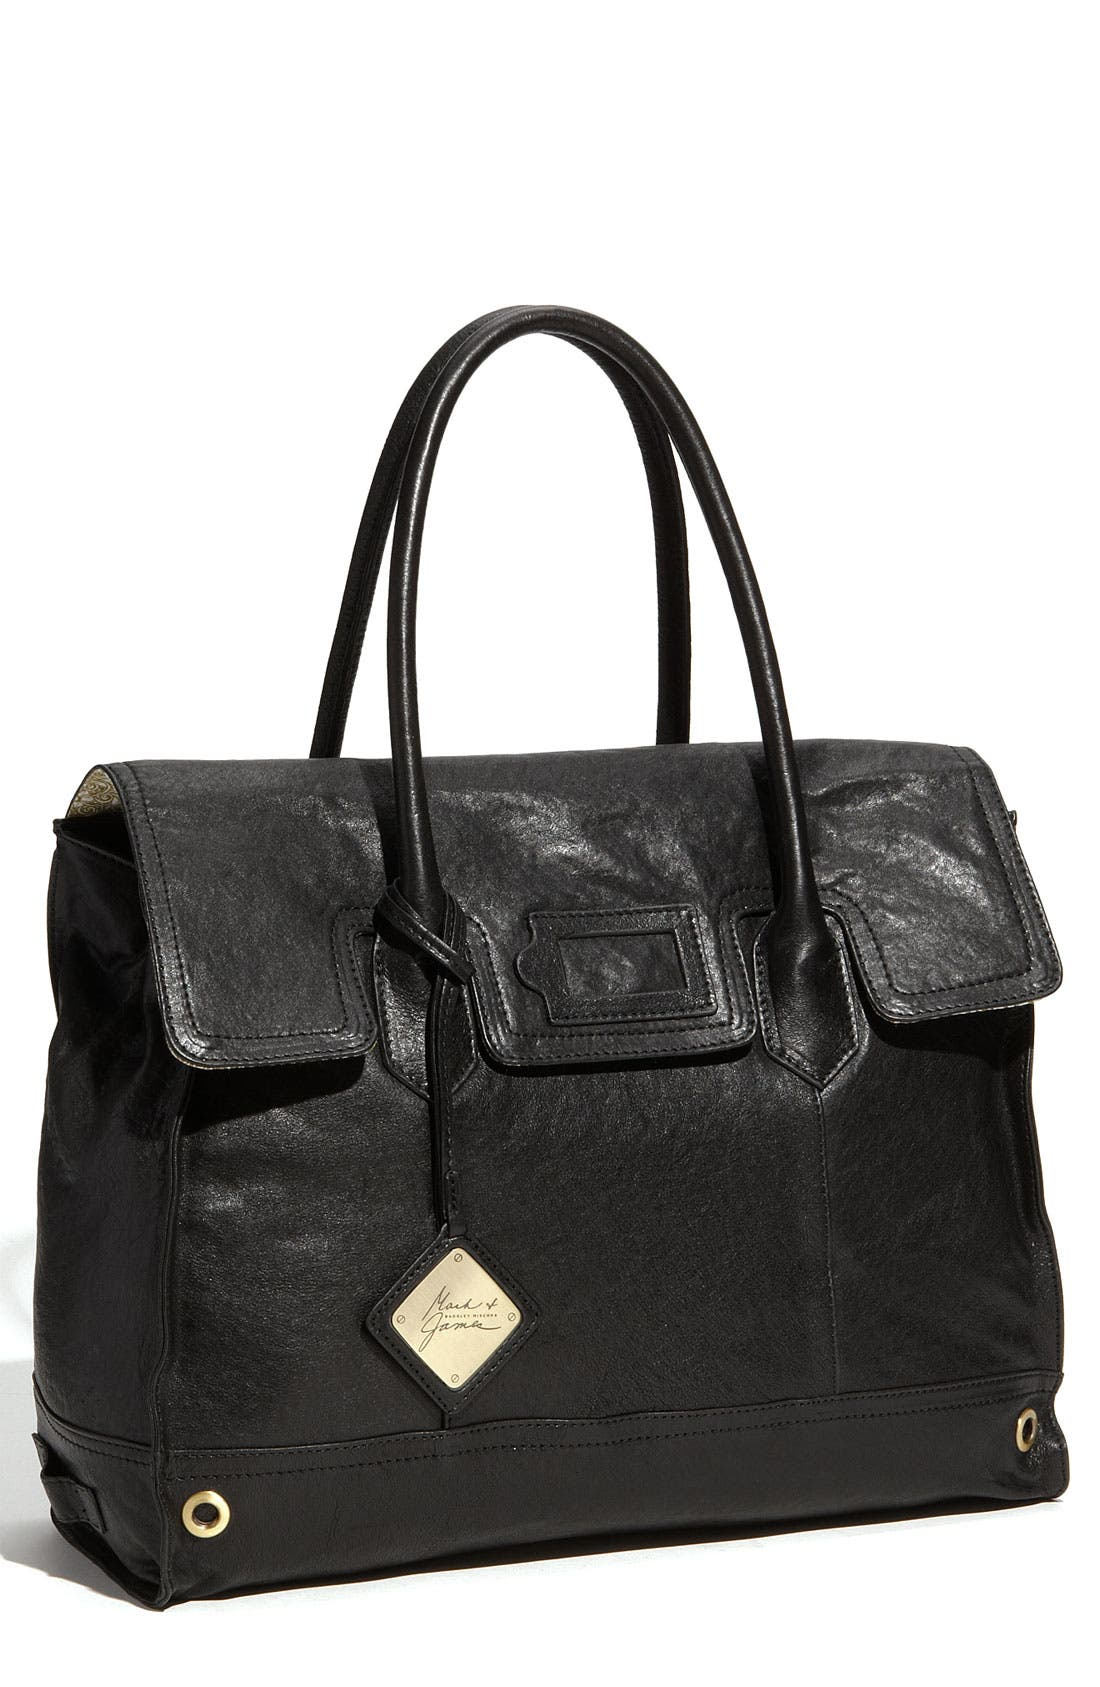 Alternate Image 1 Selected - Mark & James by Badgley Mischka 'Mina' Leather Tote